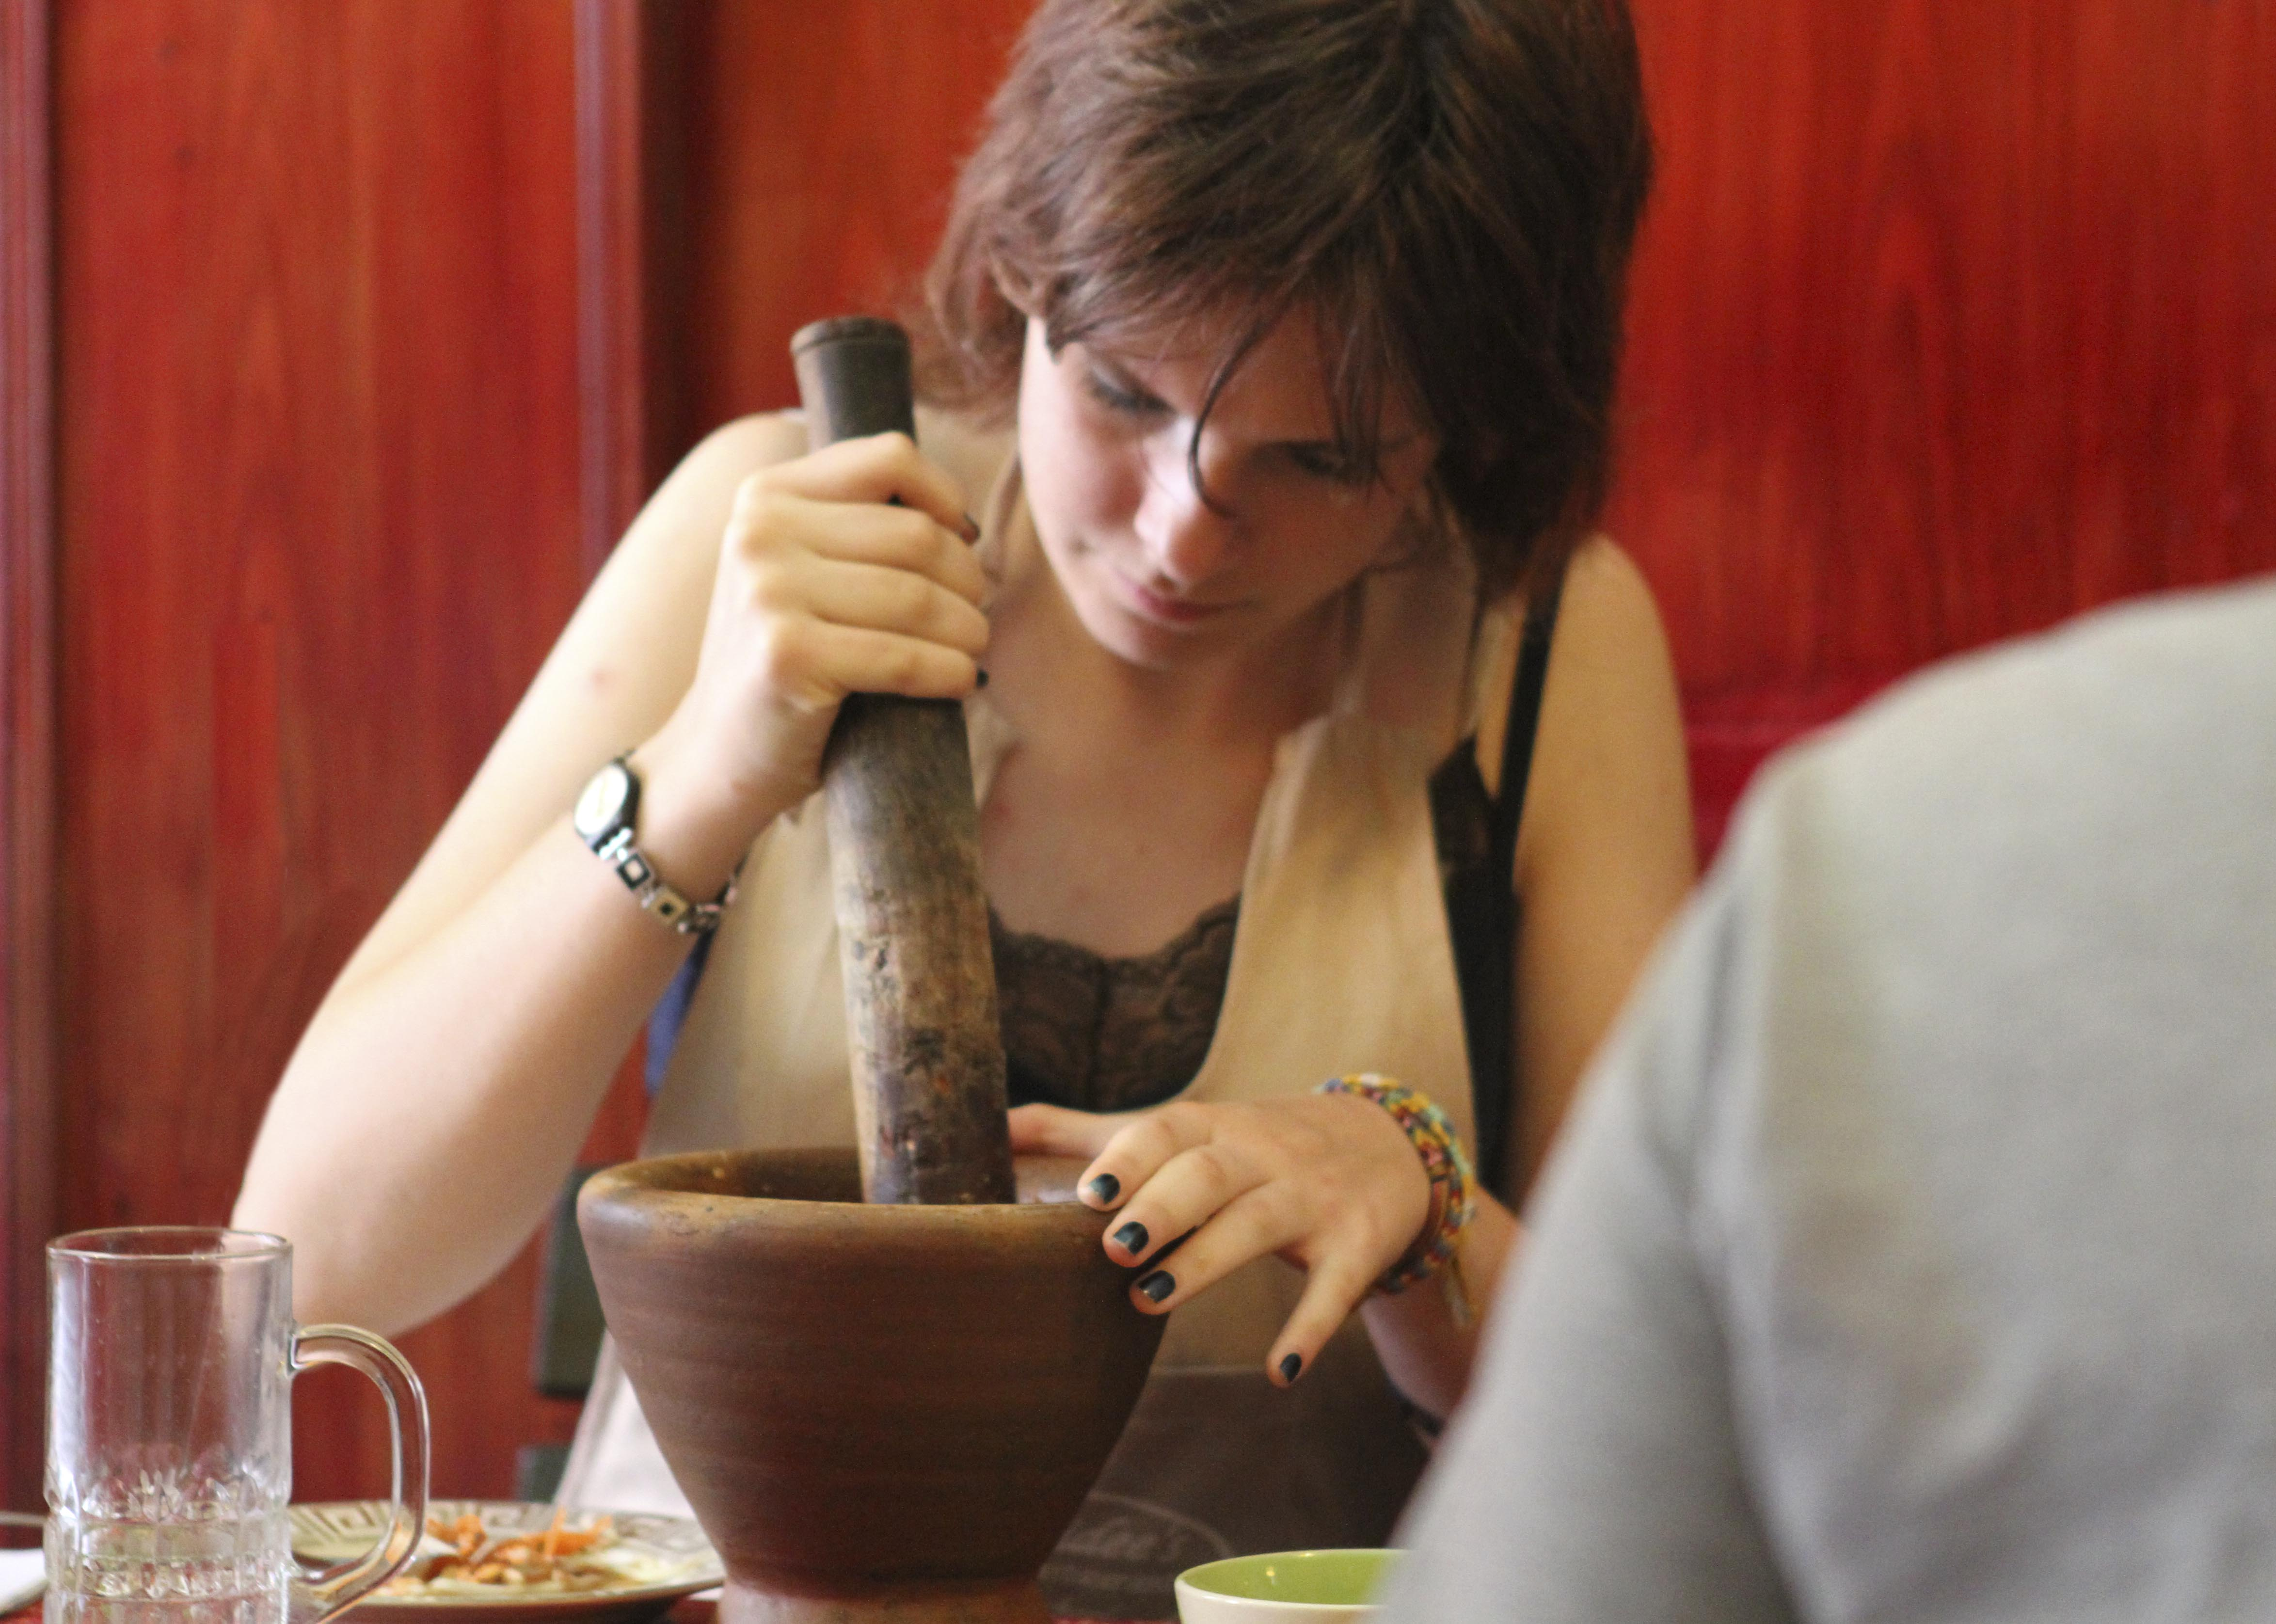 Cooking class student making chili paste with a mortar and pestle.